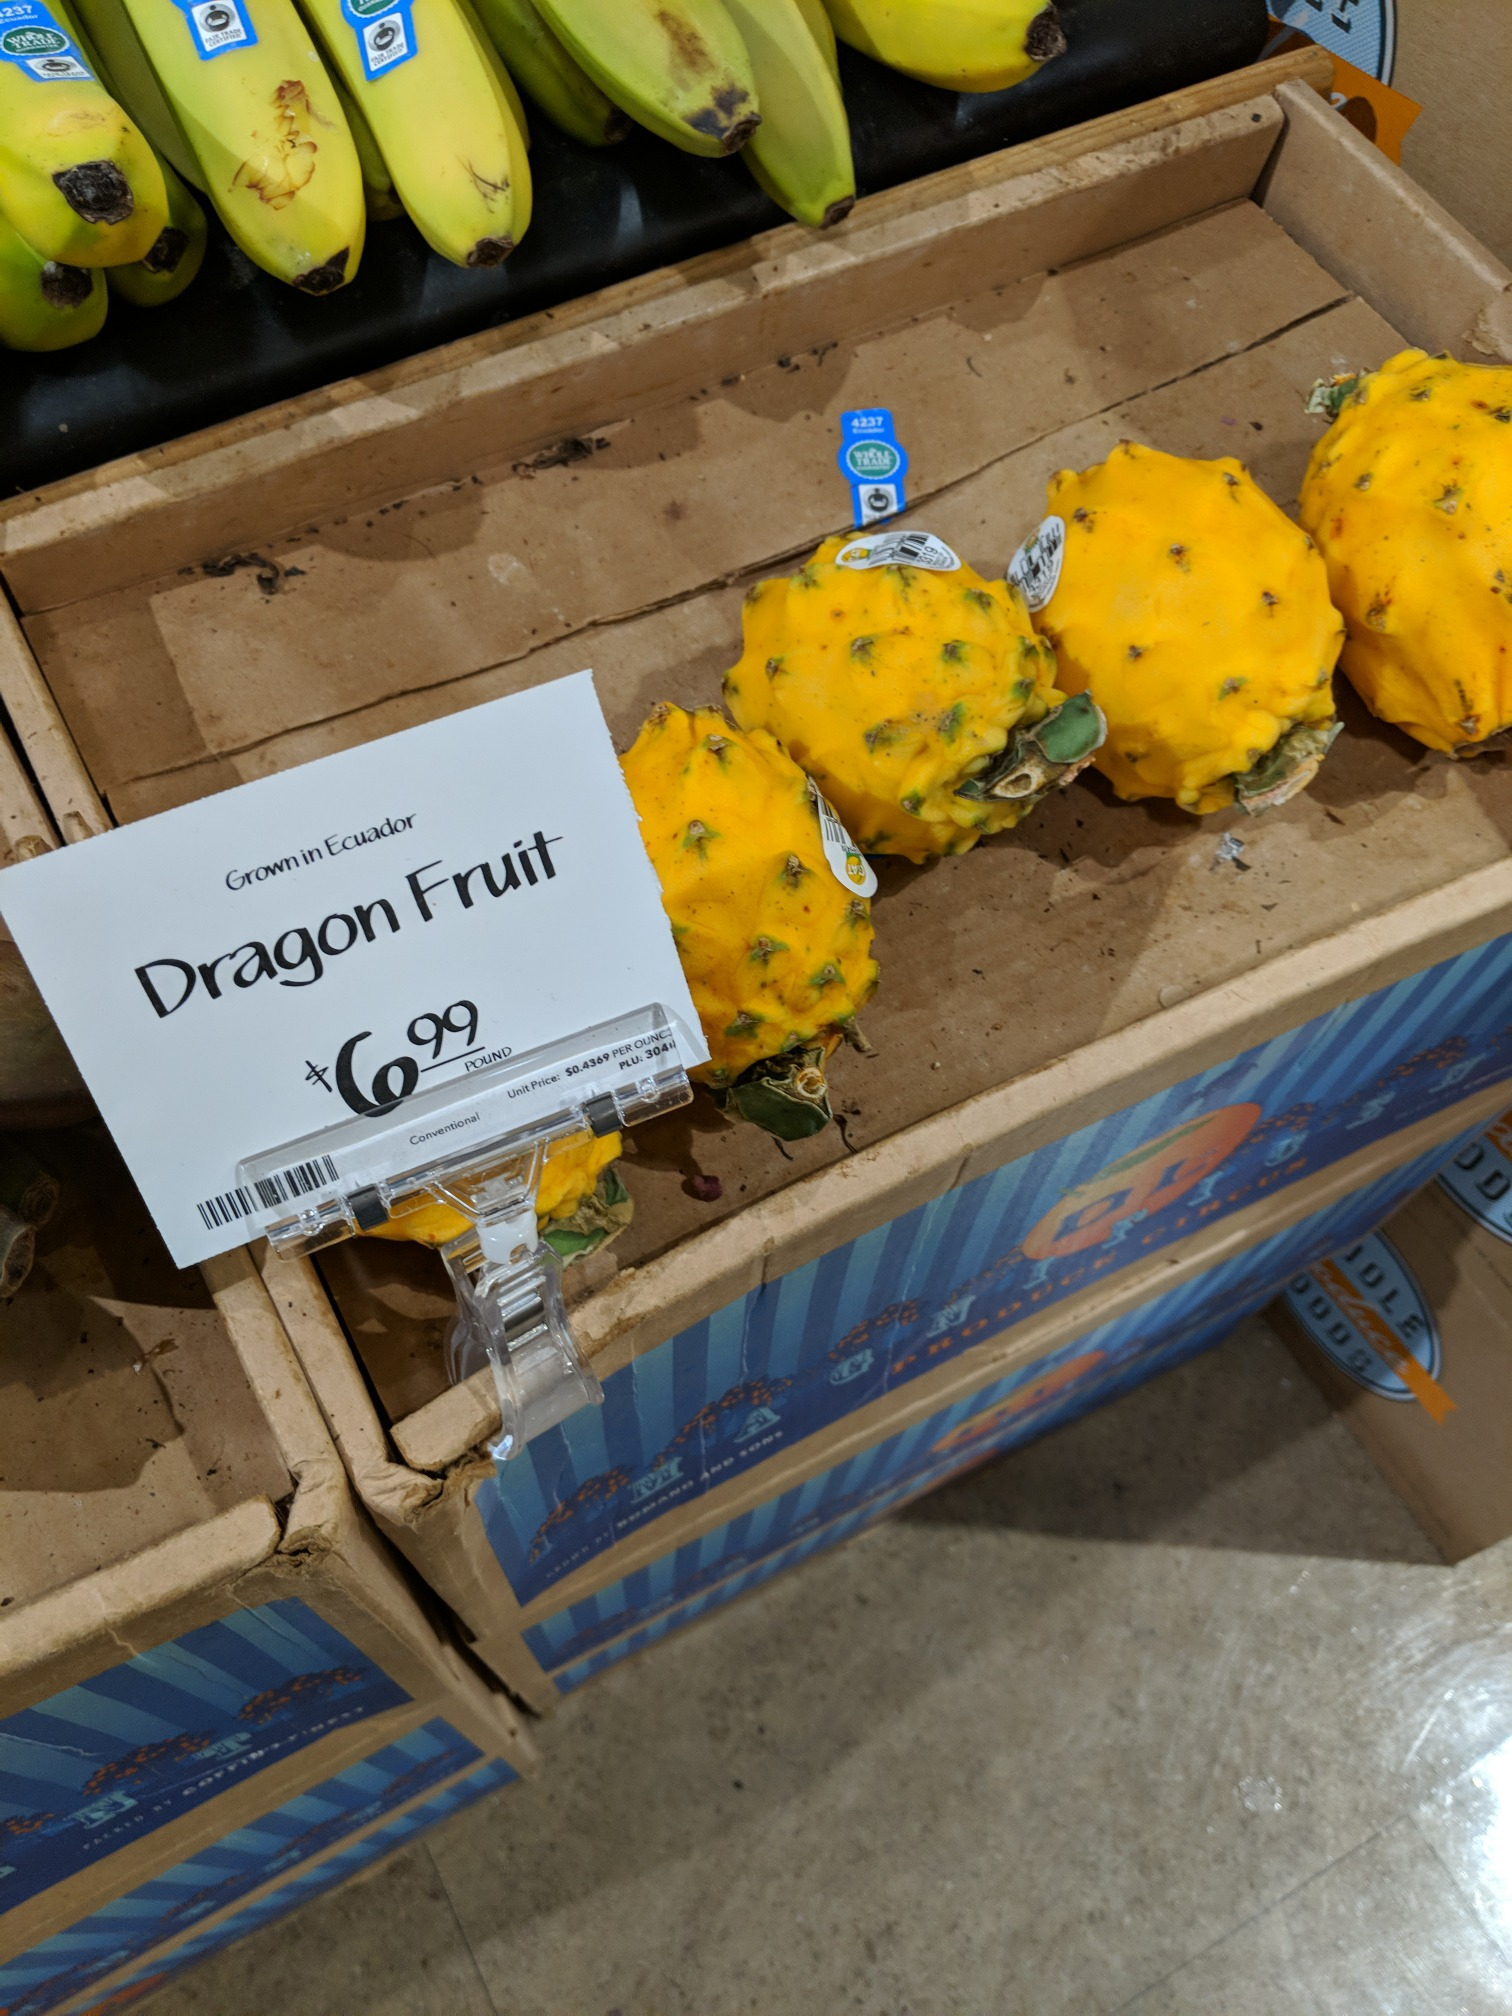 A Fruta Carambola Serve Para Que yellow dragon fruit from s.america information, recipes and